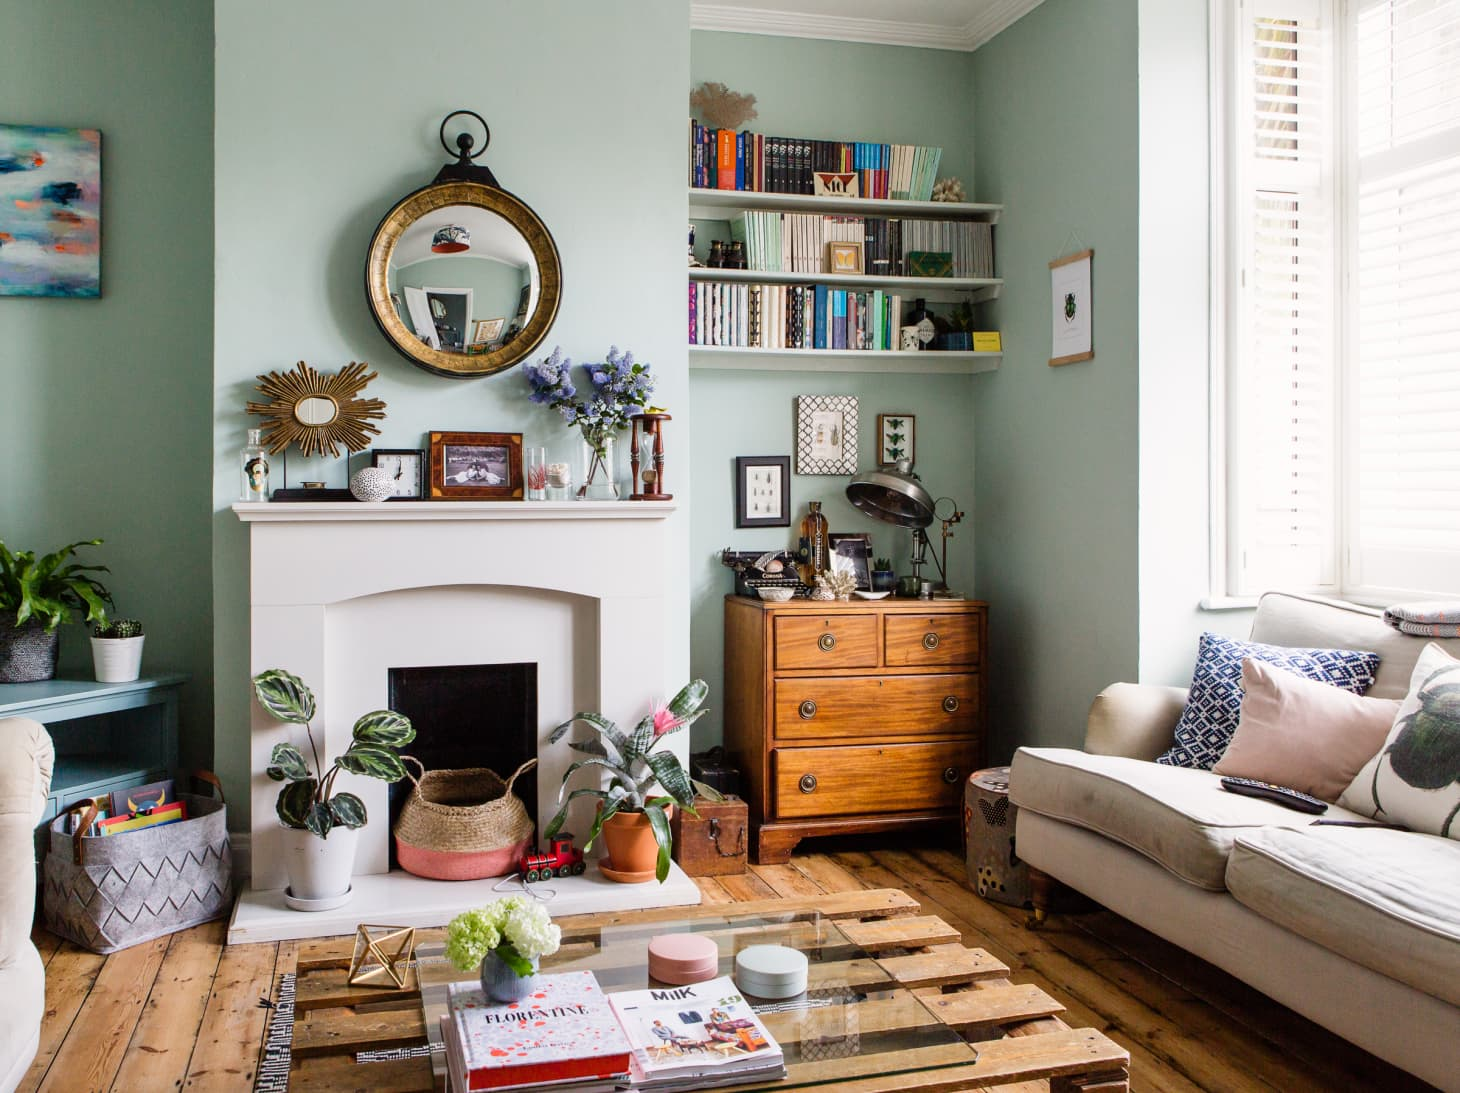 Best Small Living Room Design Ideas | Apartment Therapy